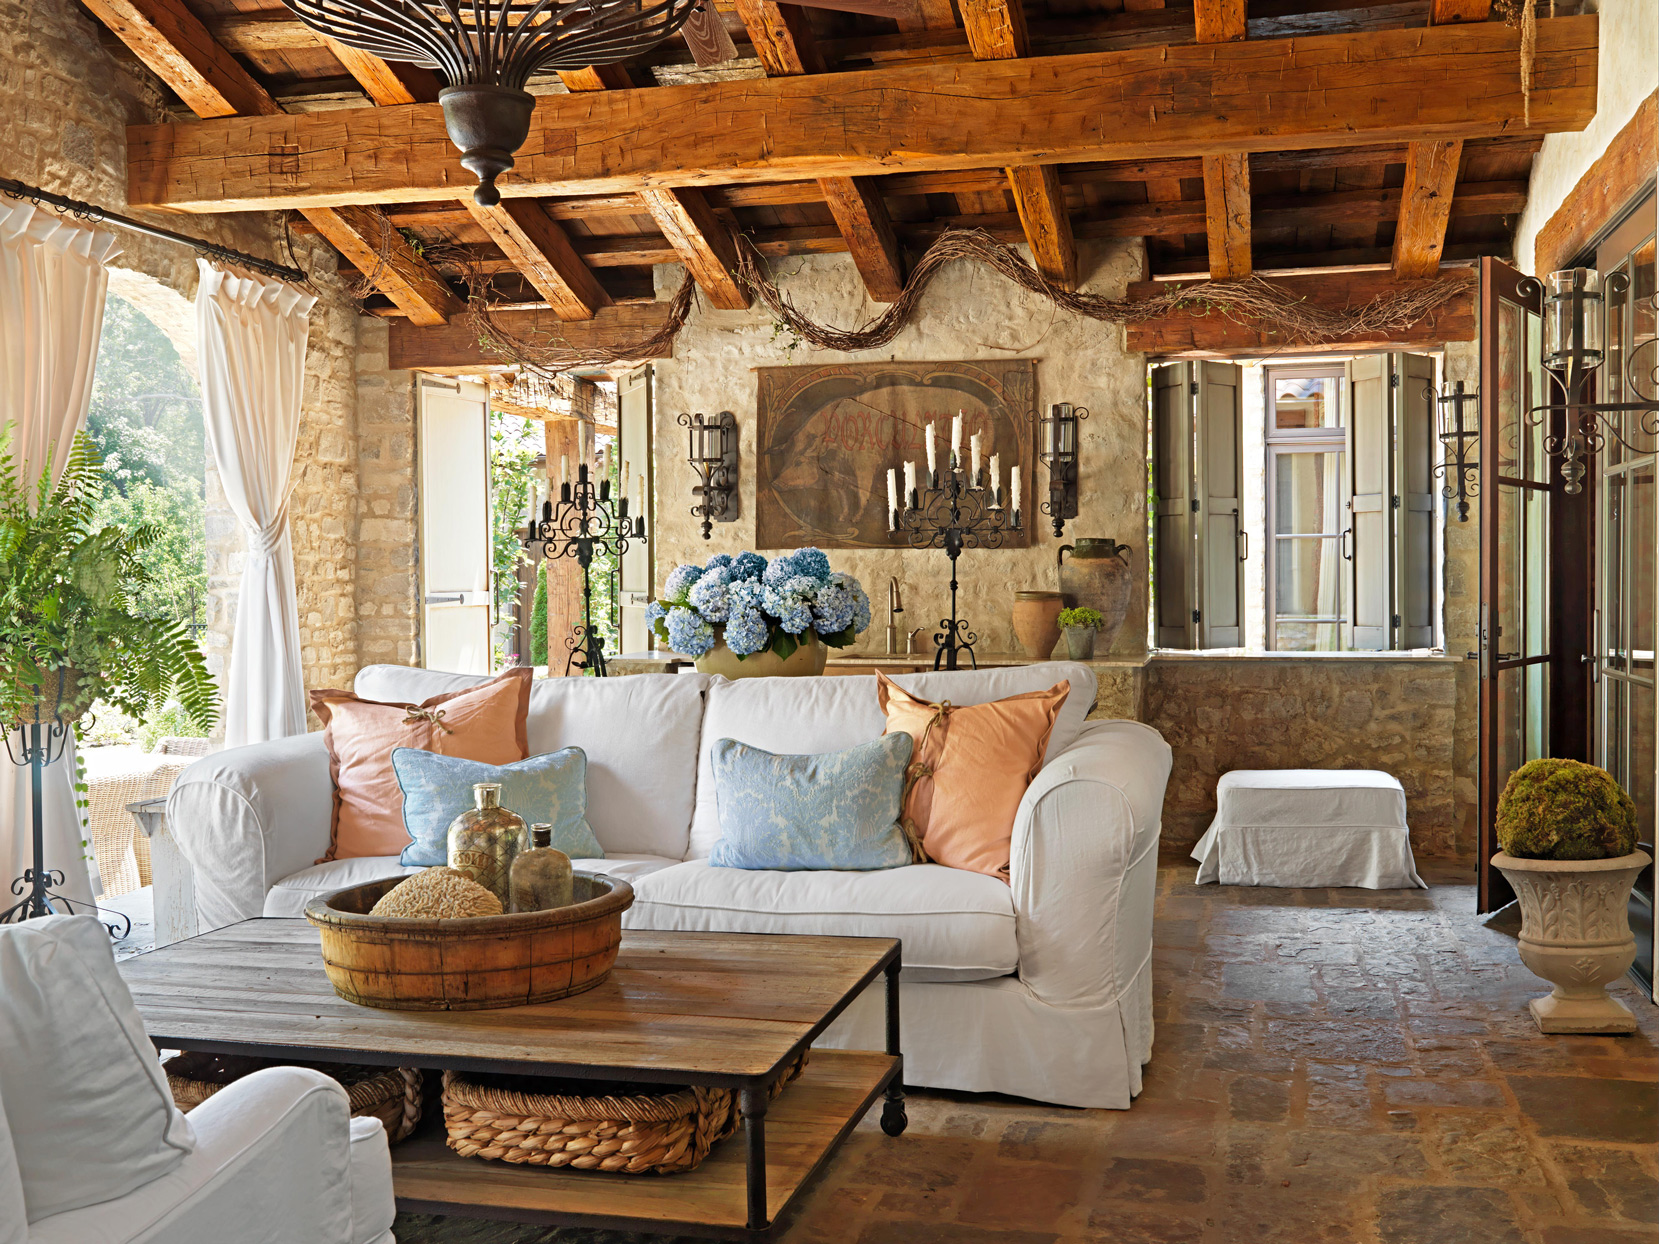 stone porch with wooden beams